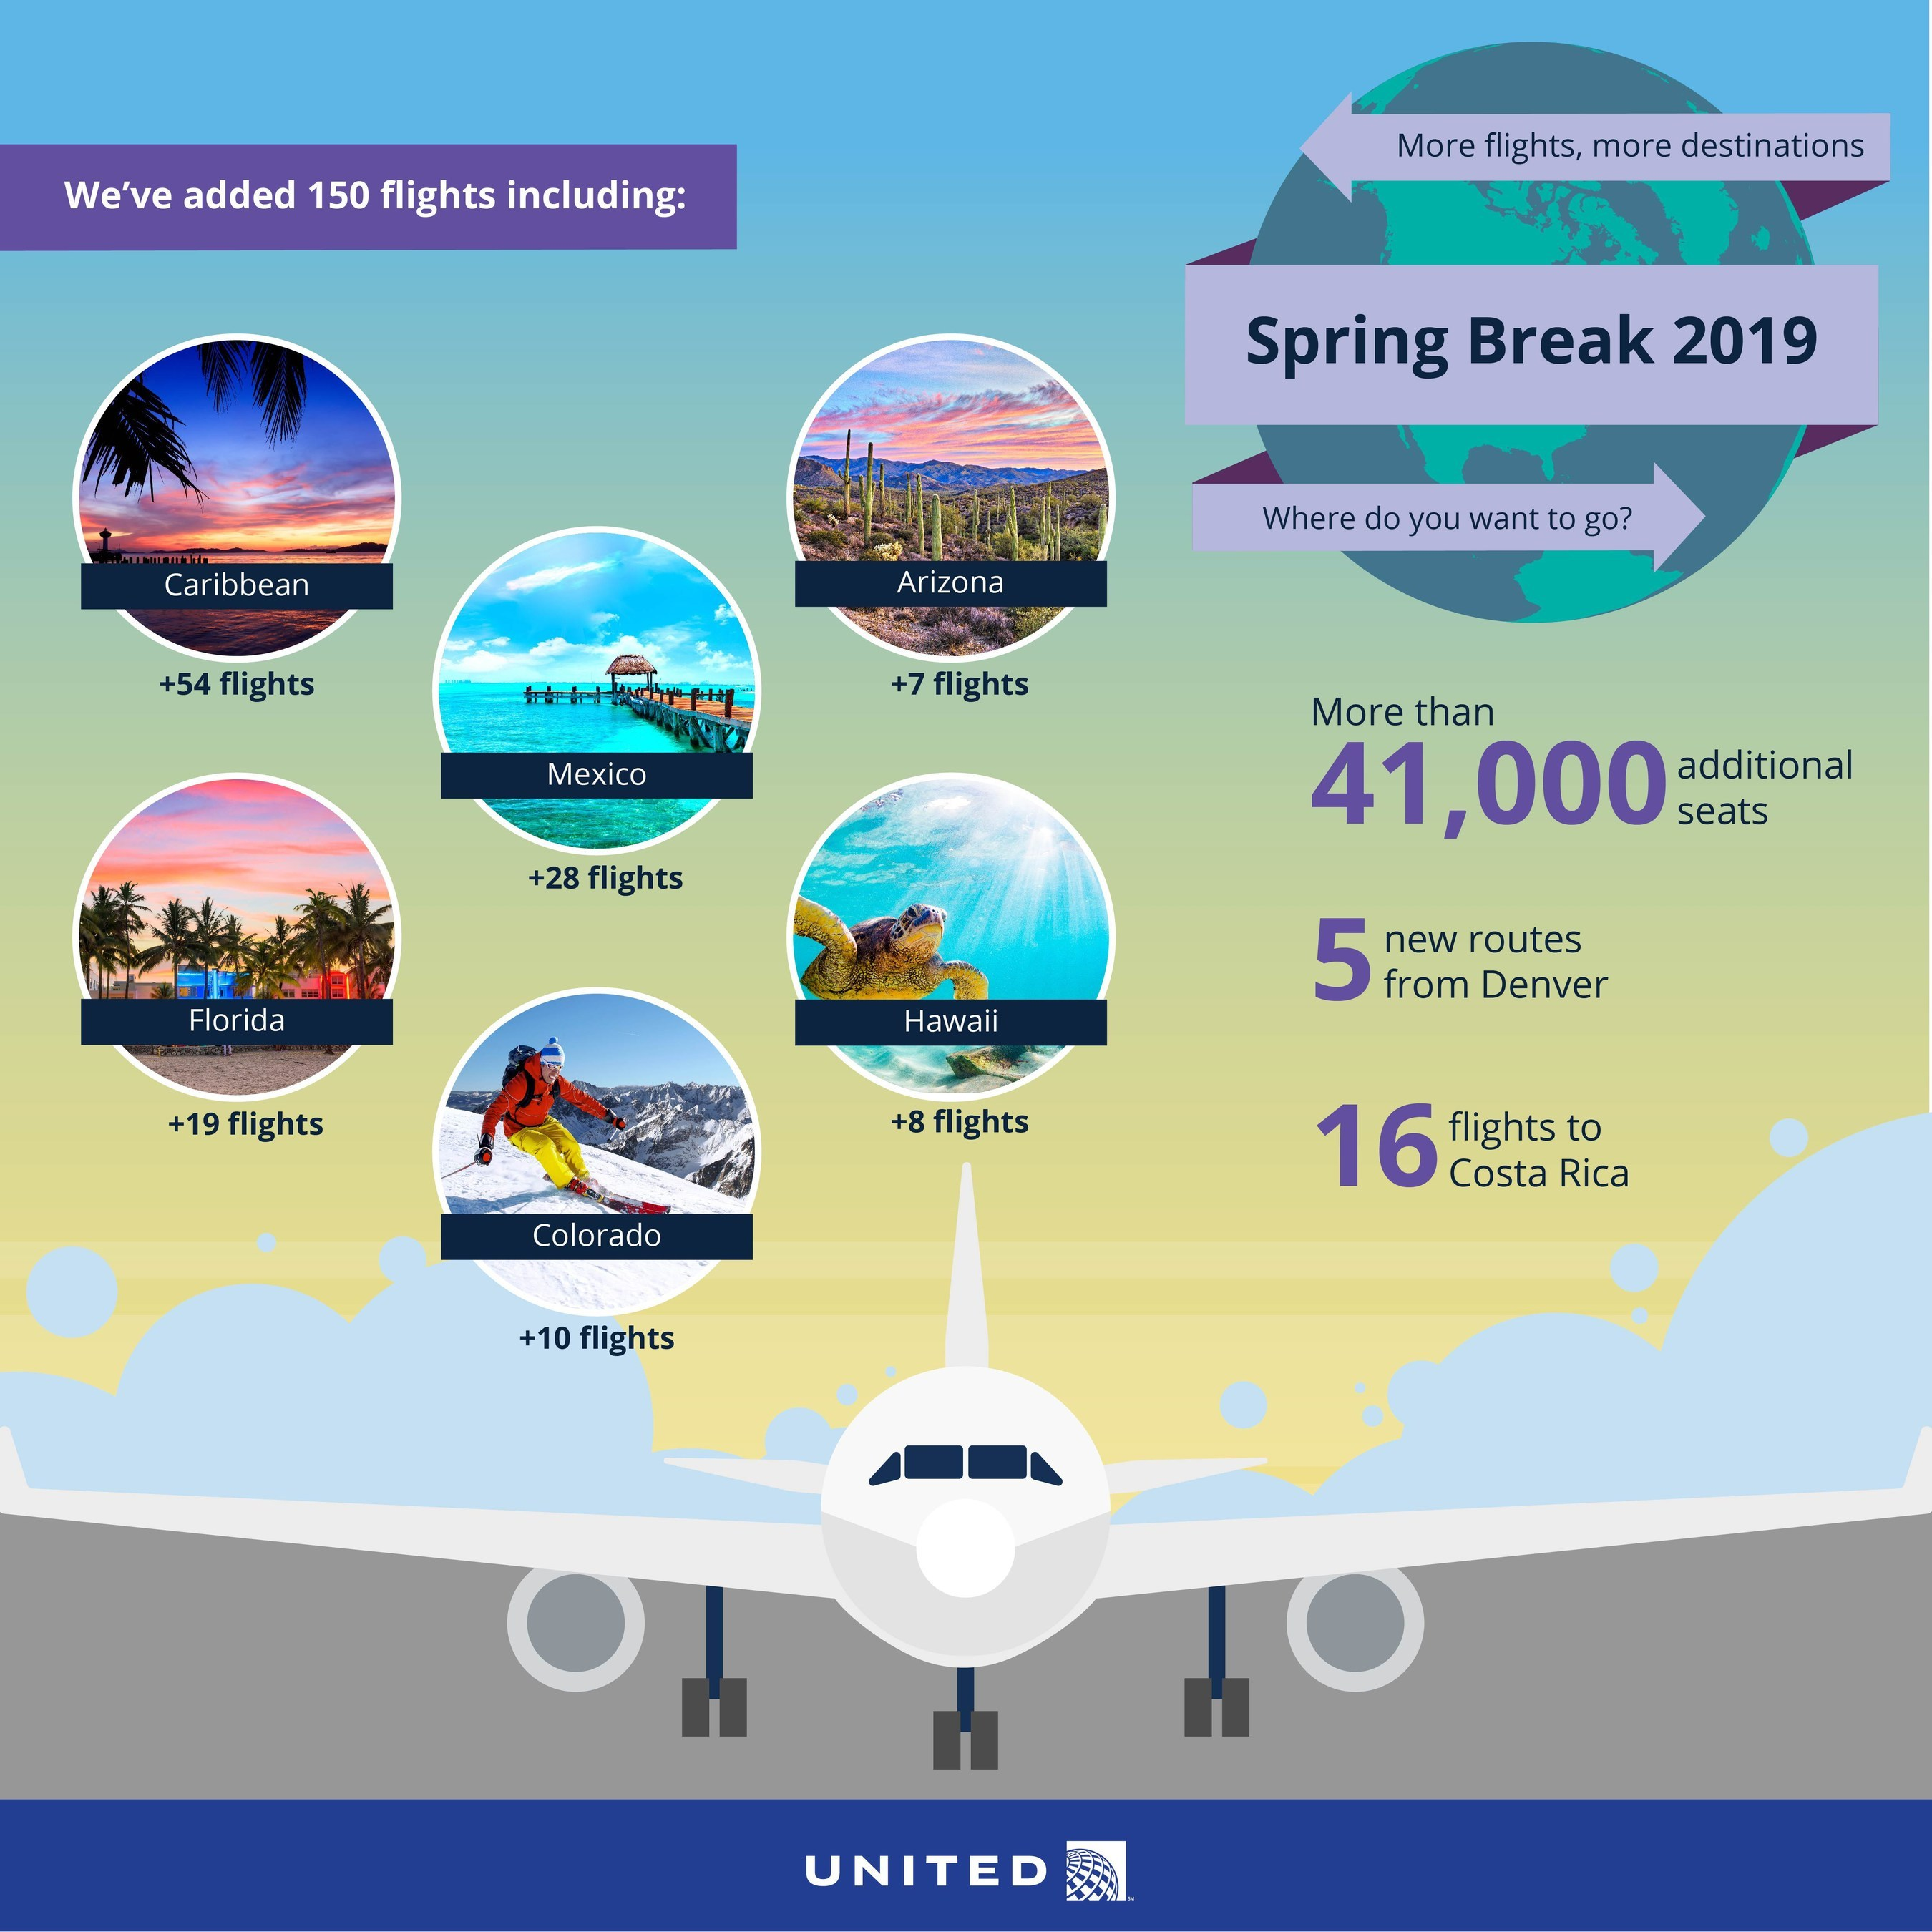 United Airlines Offering More Flights and More Seats to Popular Spring Break Destinations